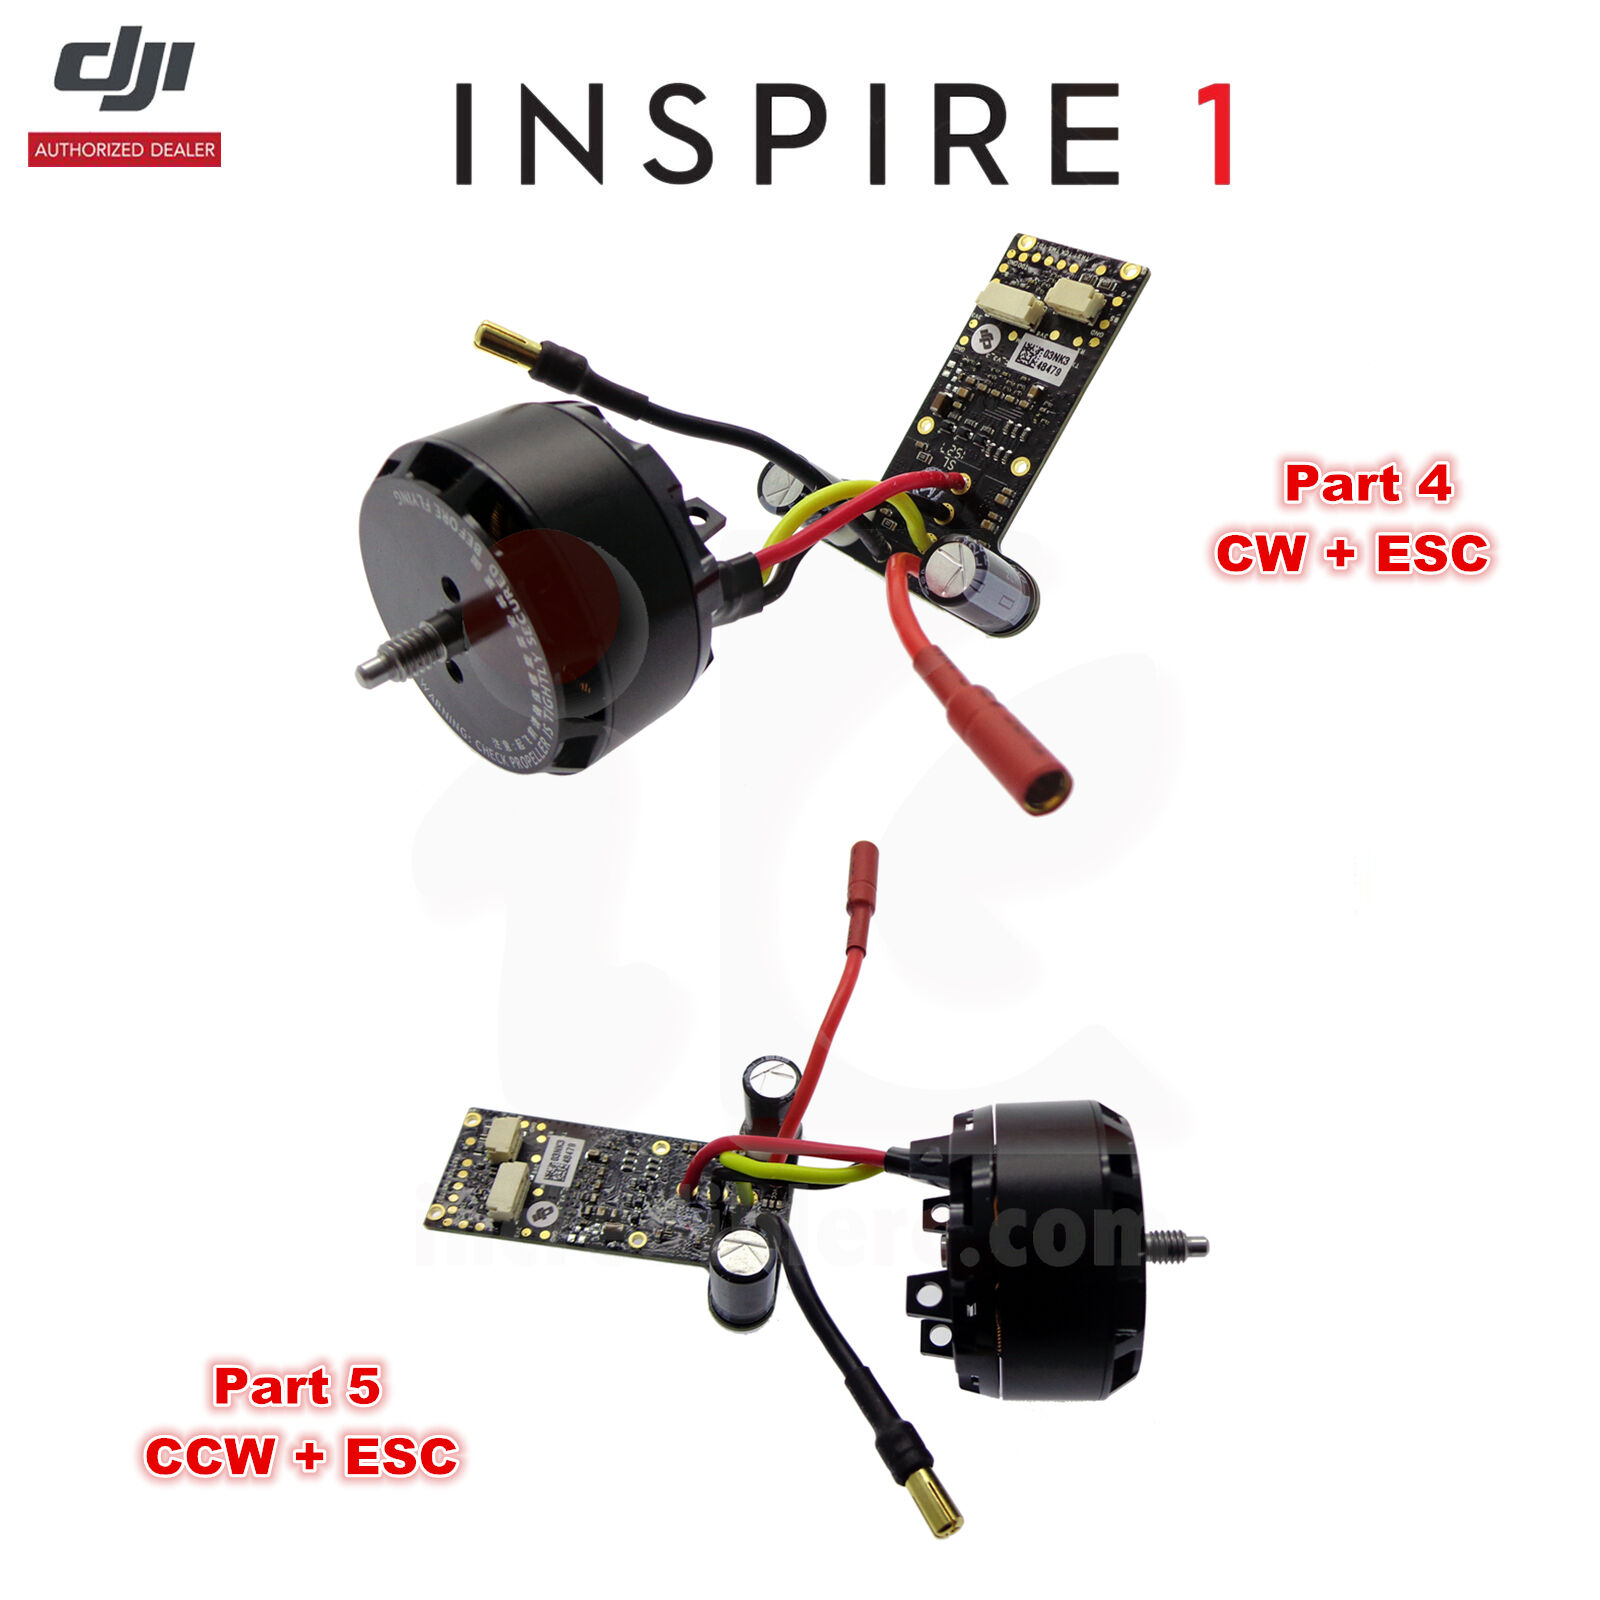 DJI Inspire 1 PRO V2.0 RC Camera Drone WM610 3510 H Brushless CW CCW Motor